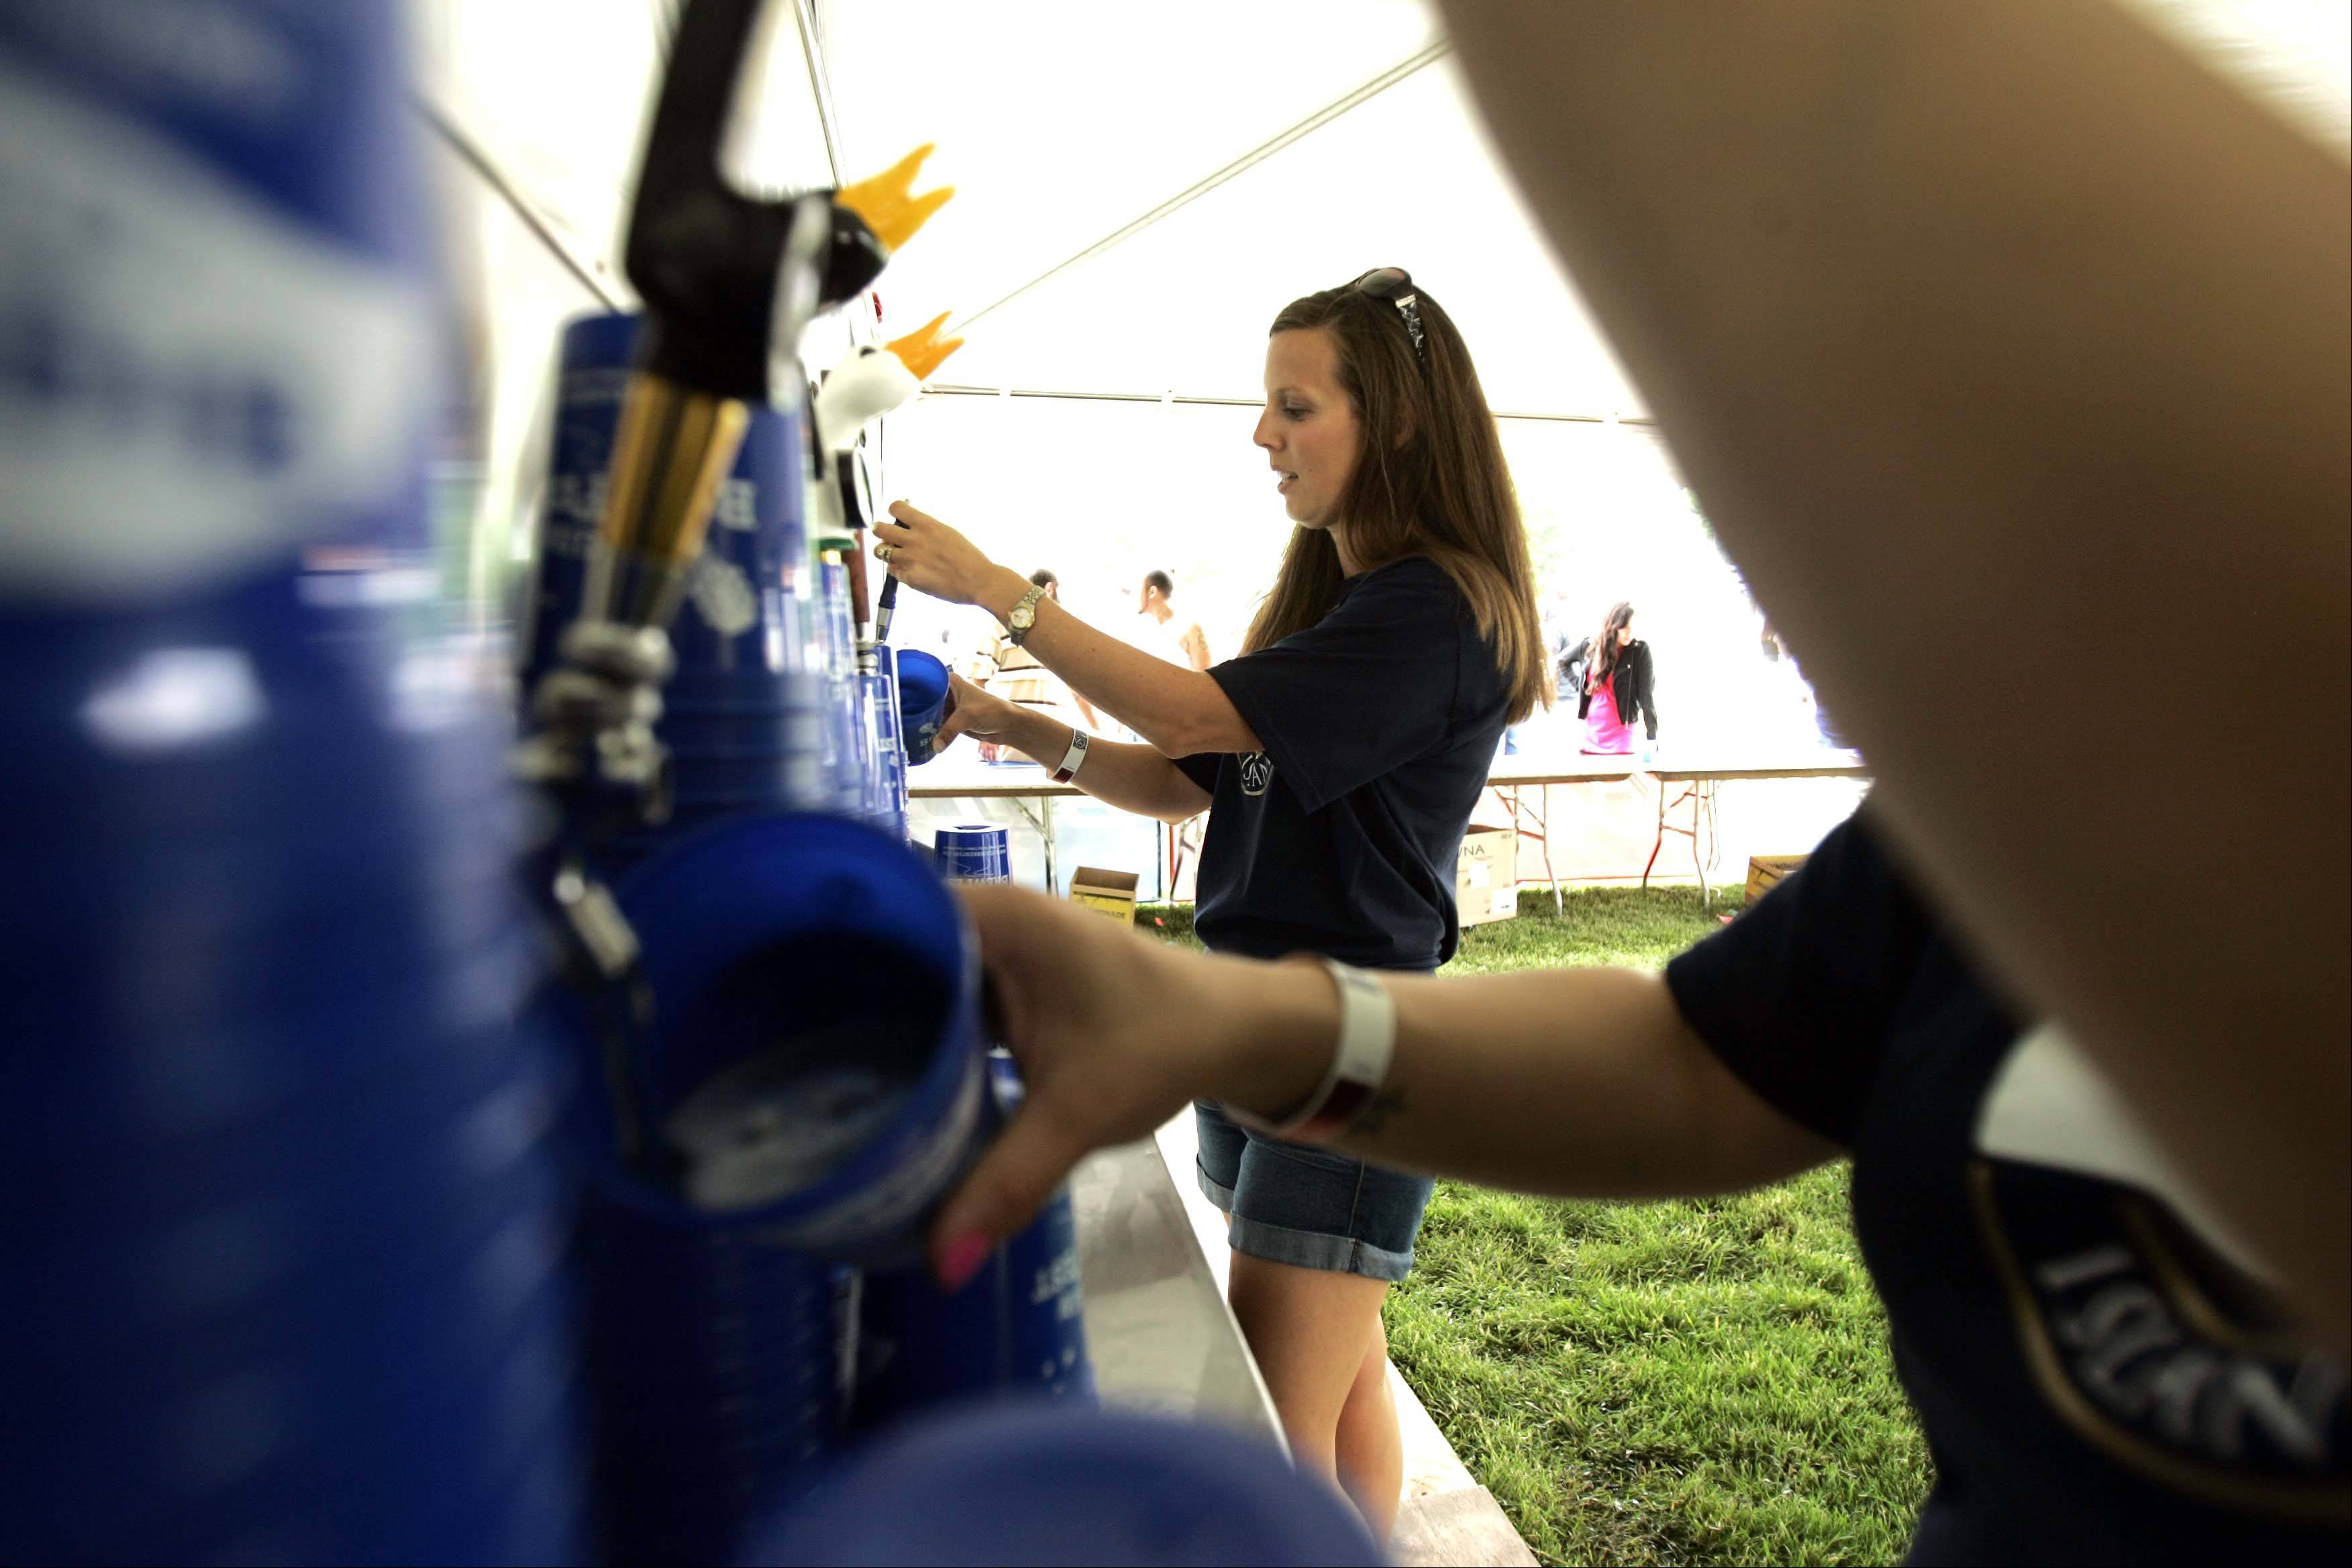 Boys and Girls Club of Elgin volunteer Sonia Lange of Aurora pours a beer during Elgin's annual Brewfest Festival Park. The festival is a fundraiser for the club.